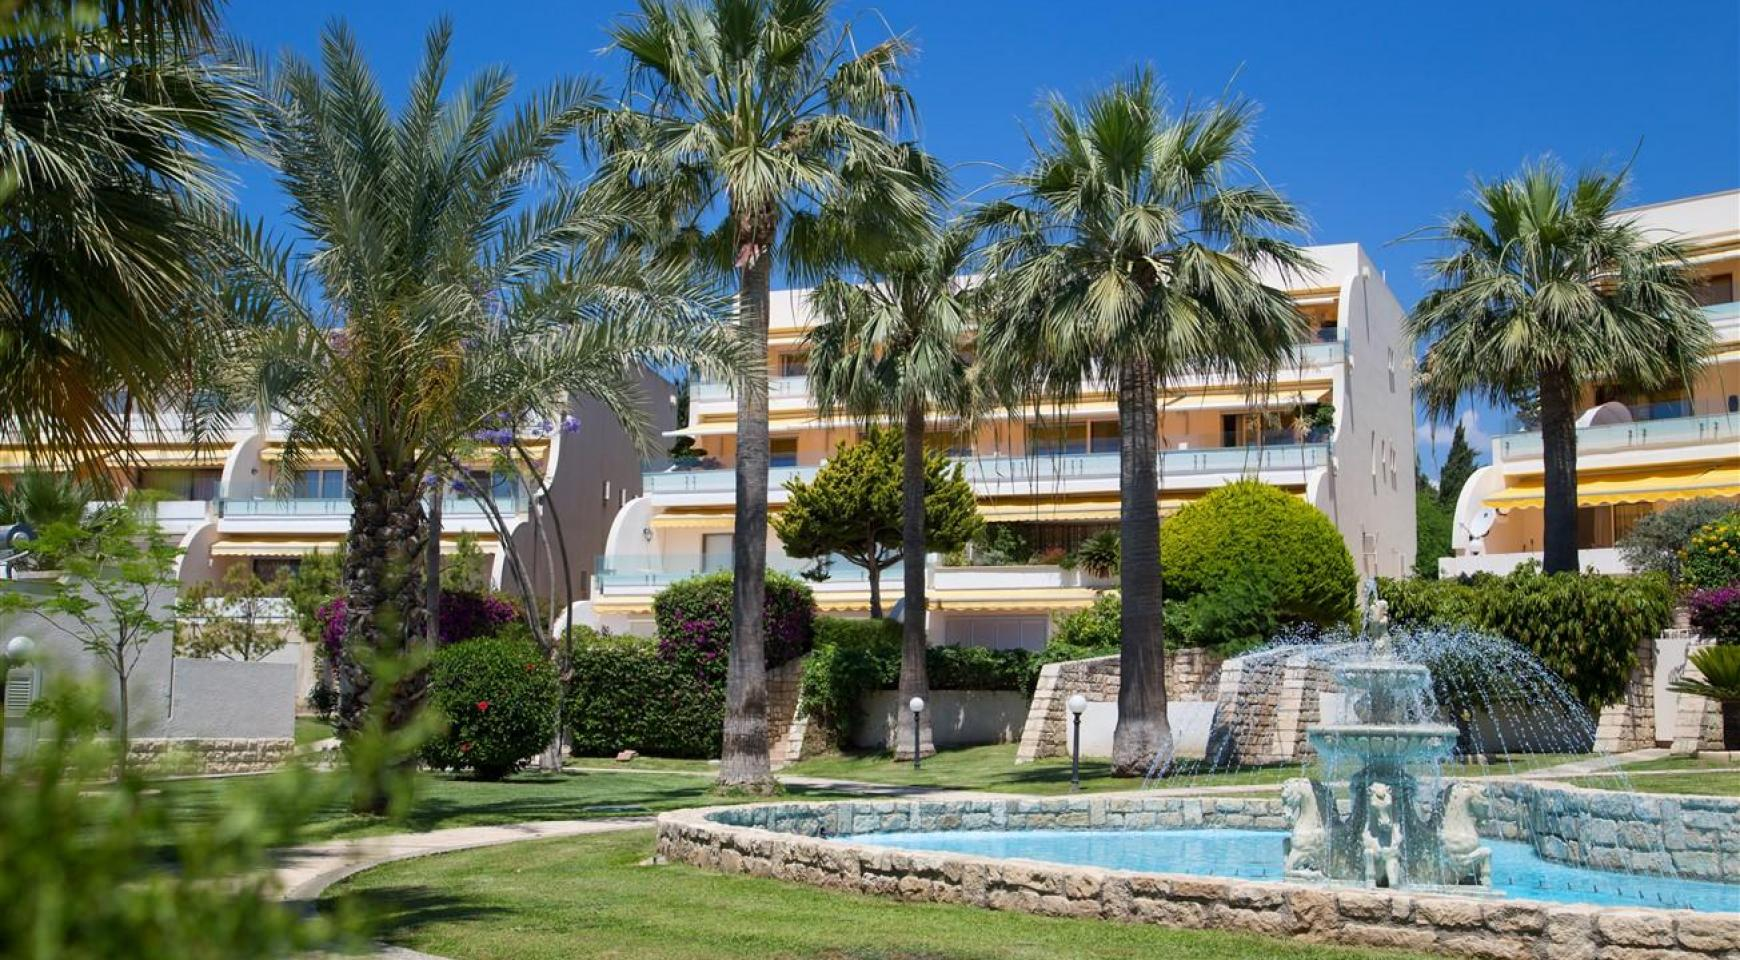 Luxury 3 Bedroom Apartment Thera Complex by the Sea - 3